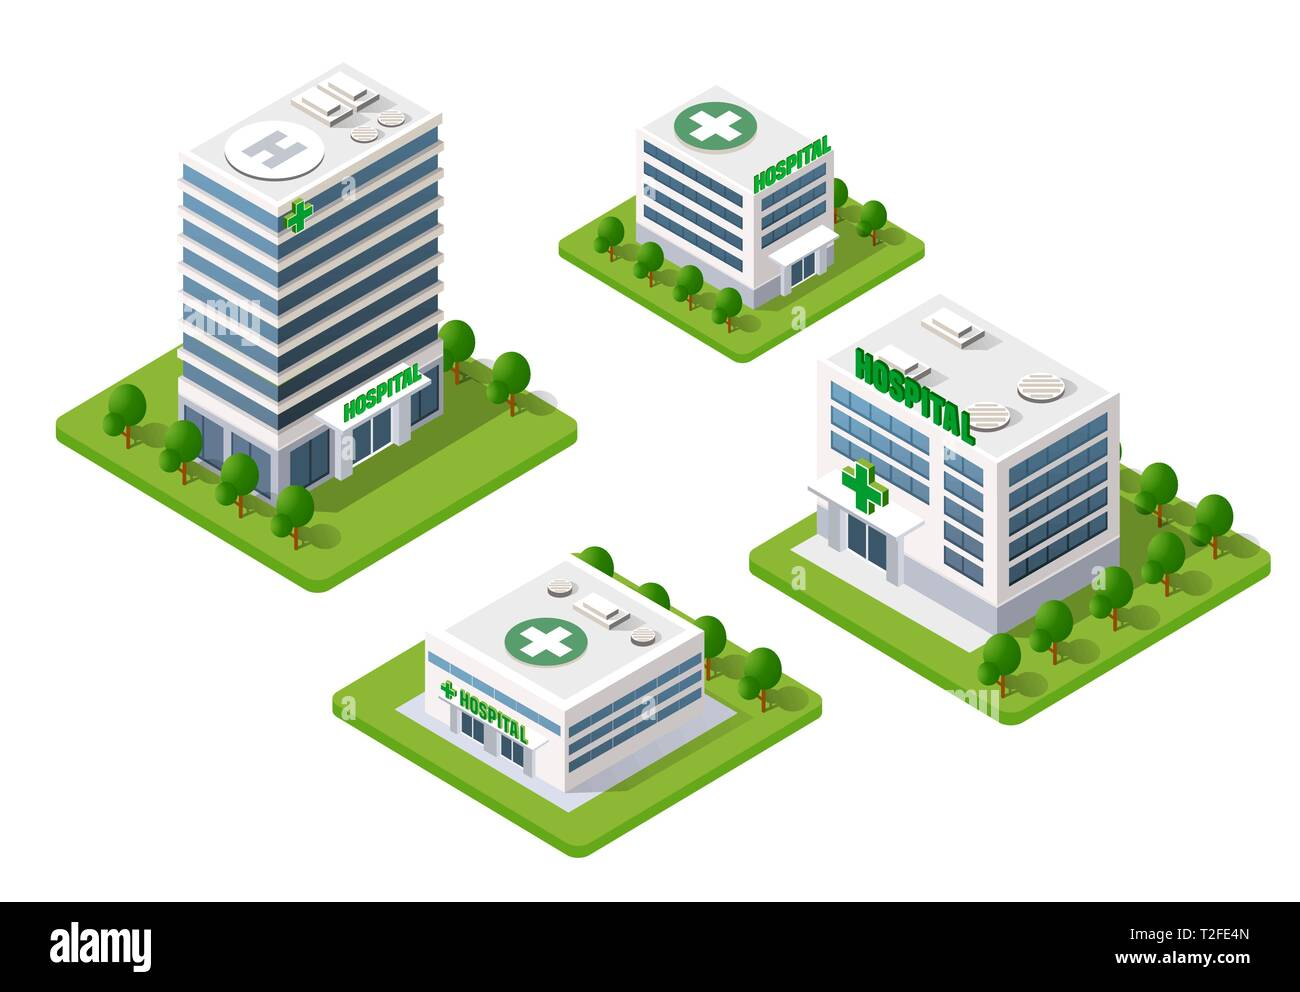 Hospital Isometric 3d Building Health Urban of architecture